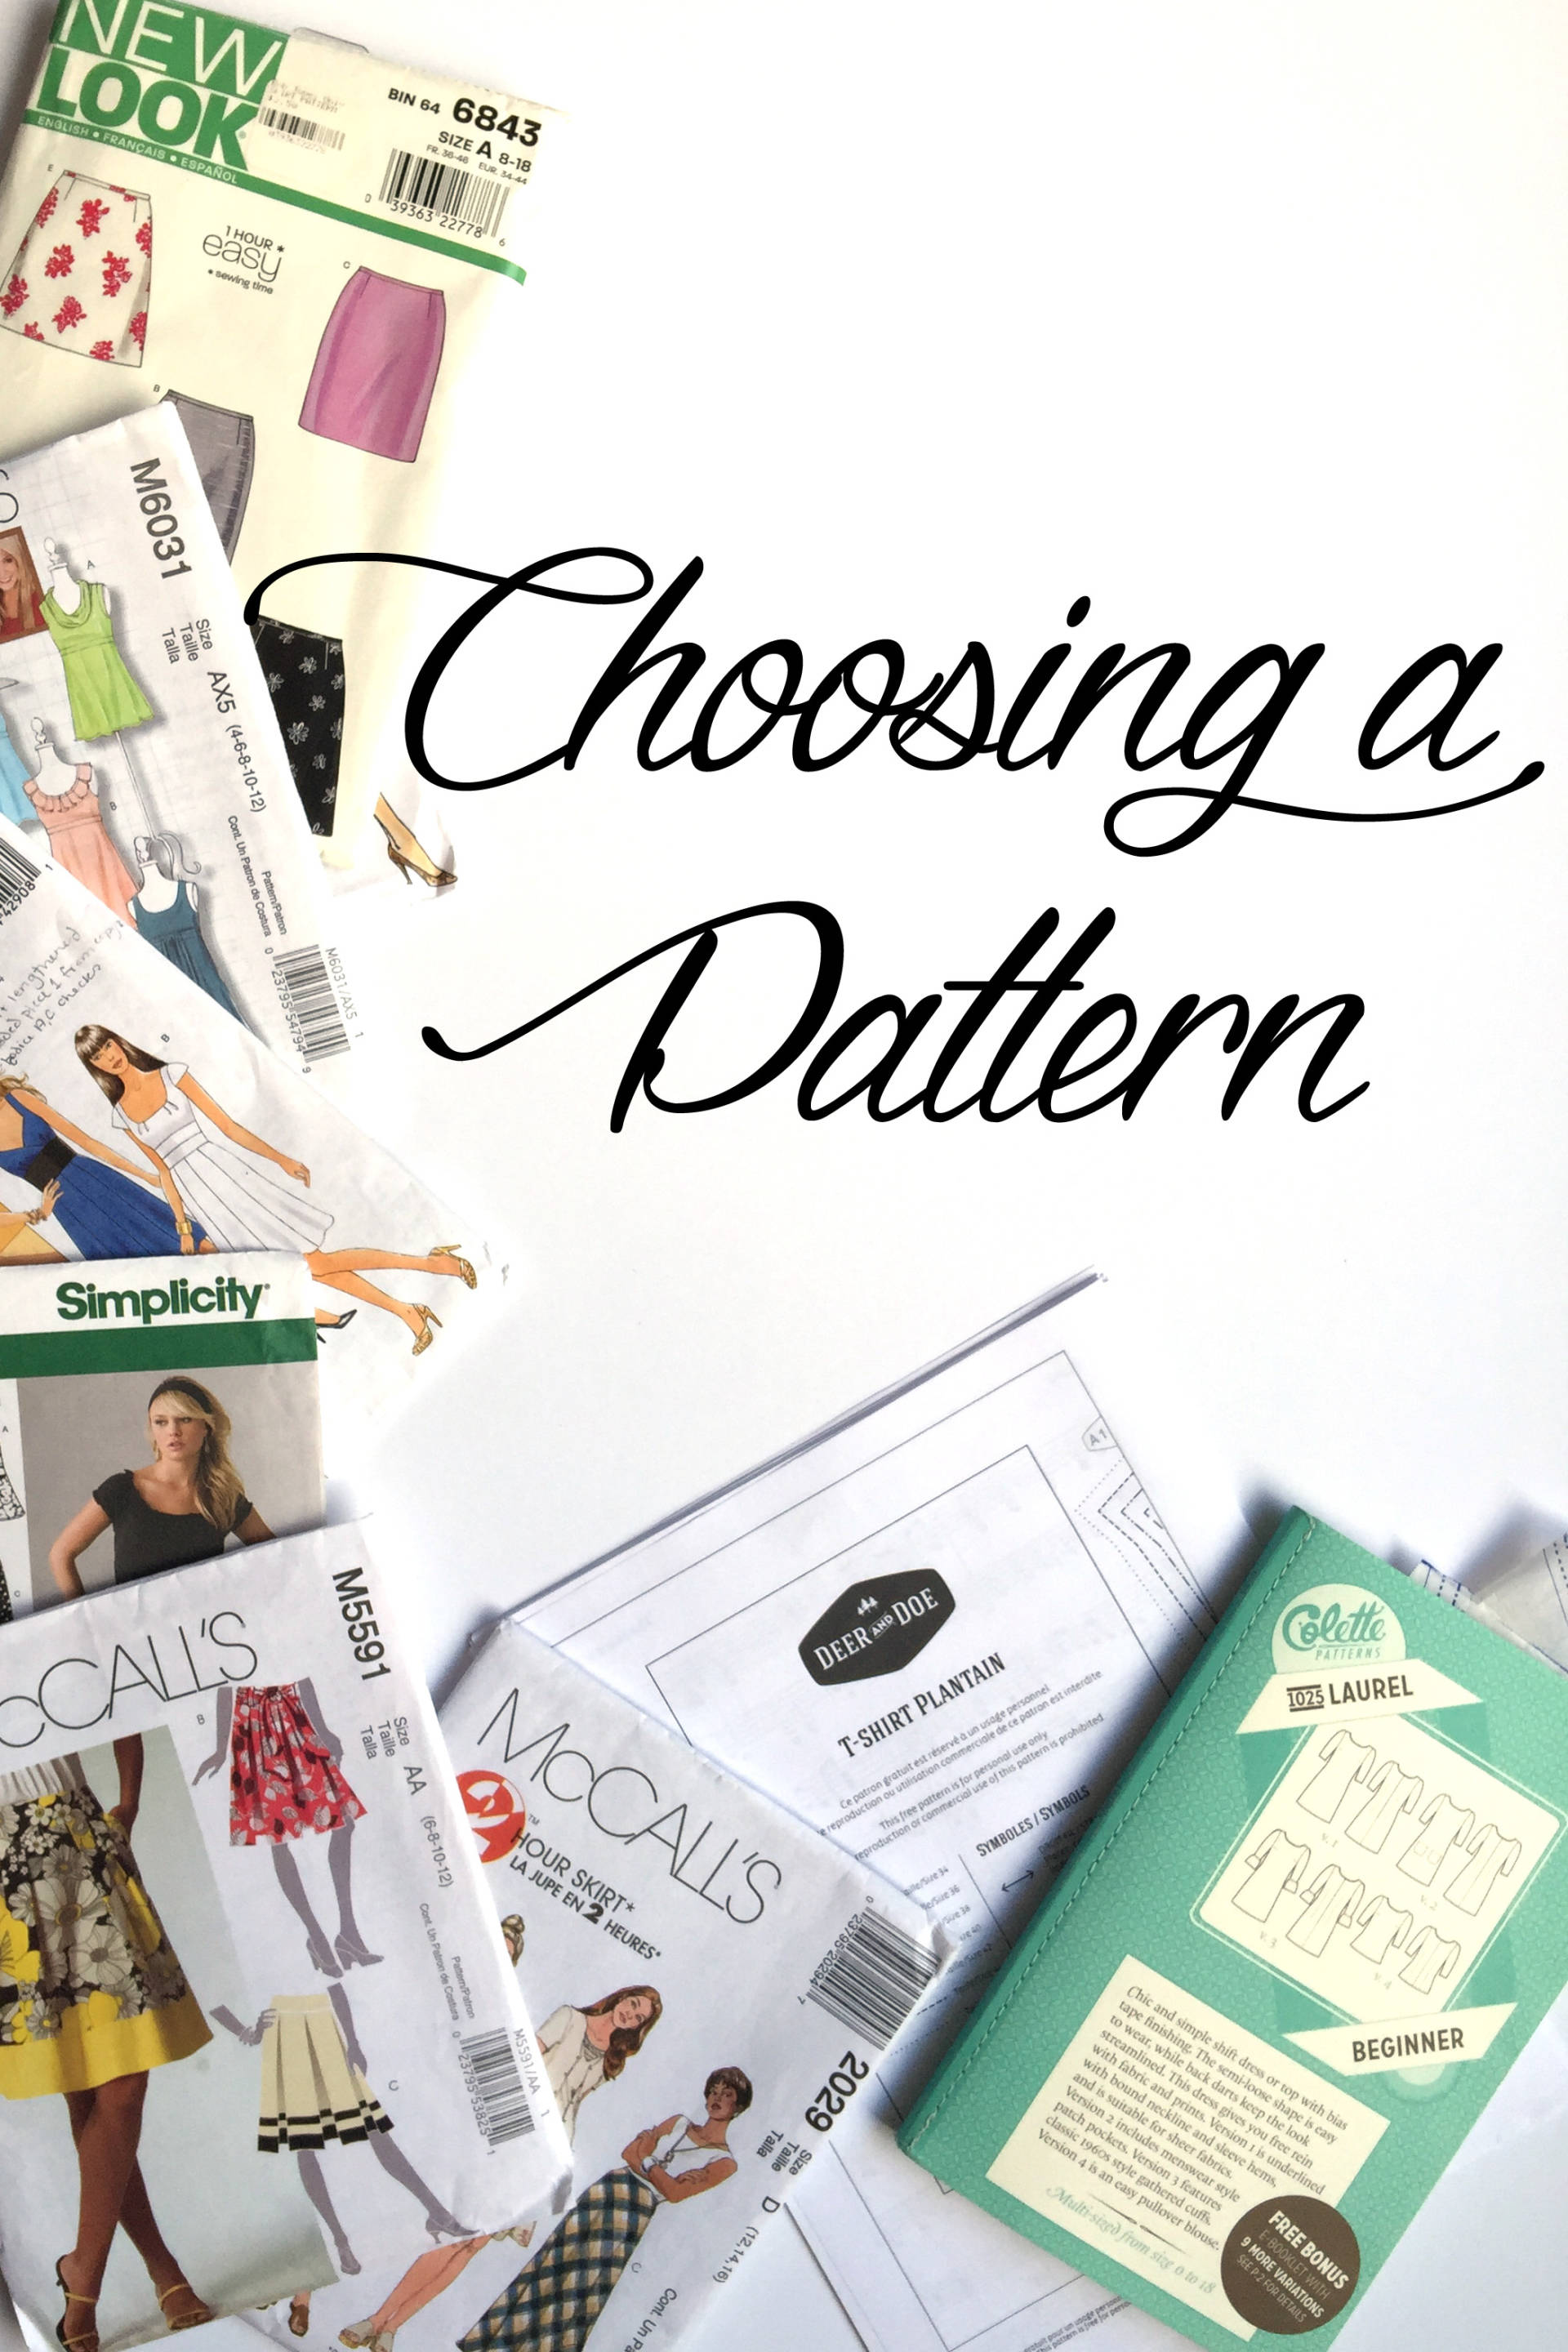 Tips for choosing a pattern